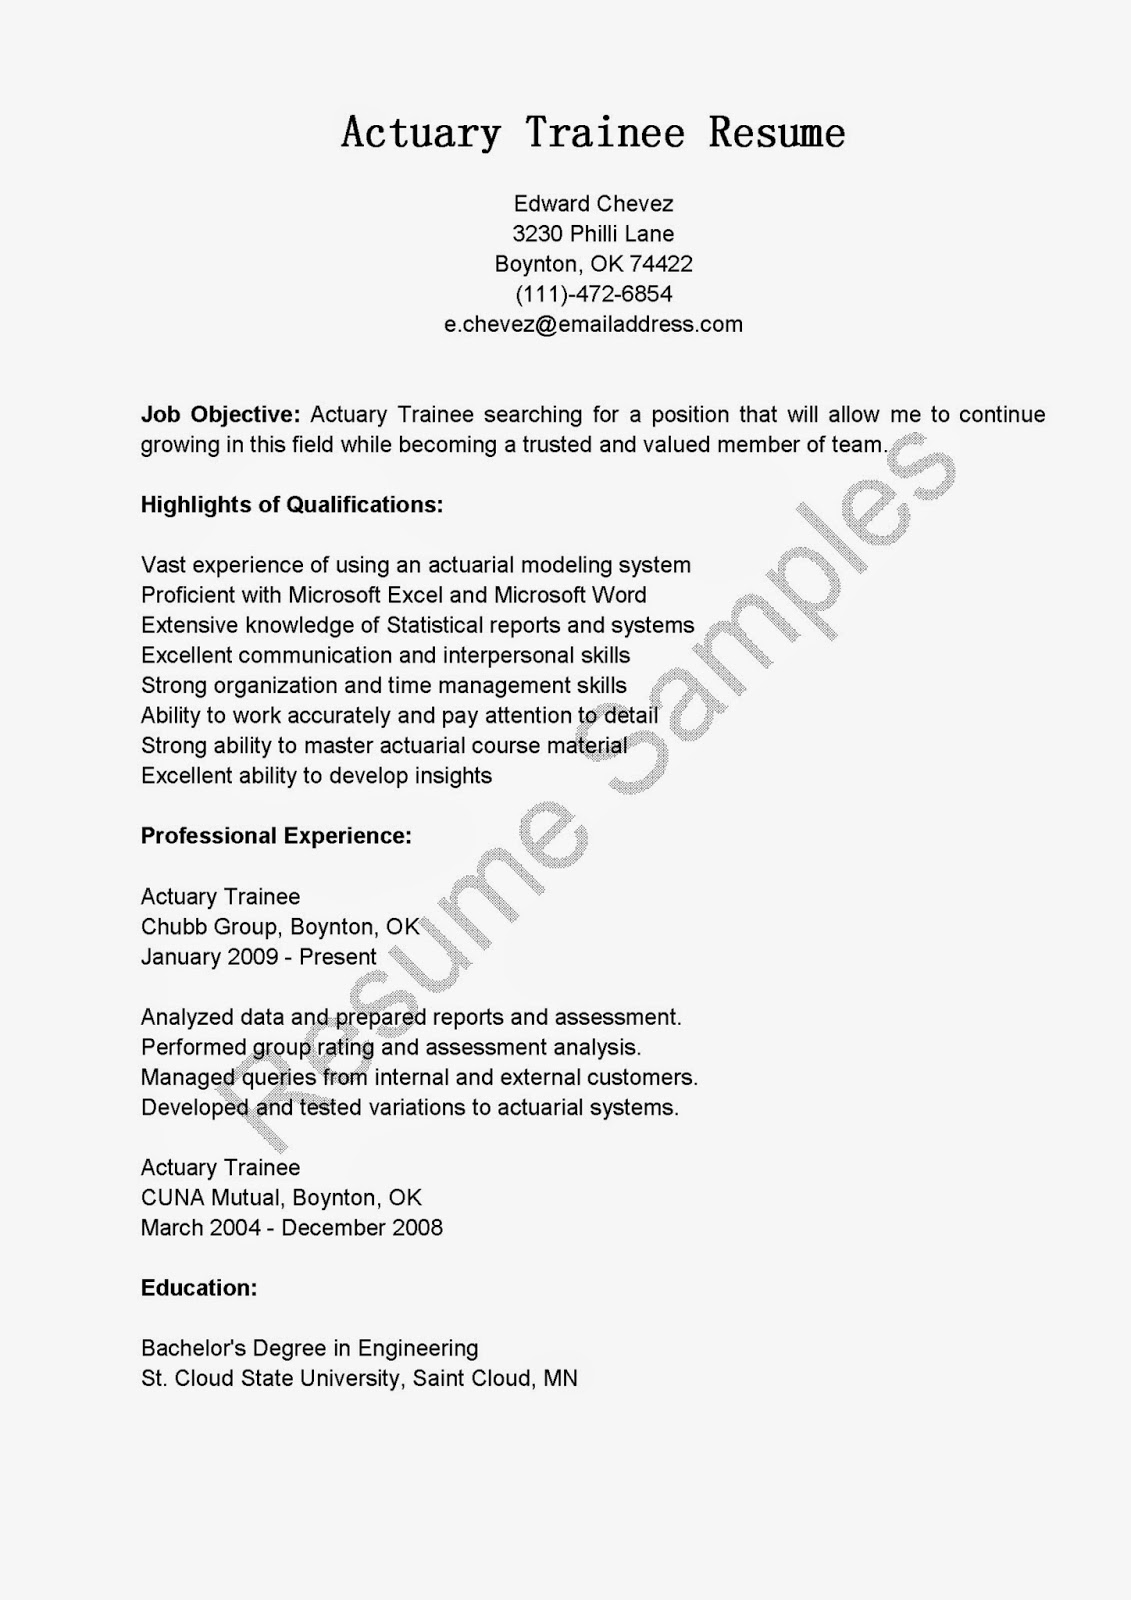 Cover Letter Entry Level Actuary Jobs Actuarial Assistant AppTiled Com  Unique App Finder Engine Latest Reviews  Entry Level Actuary Resume